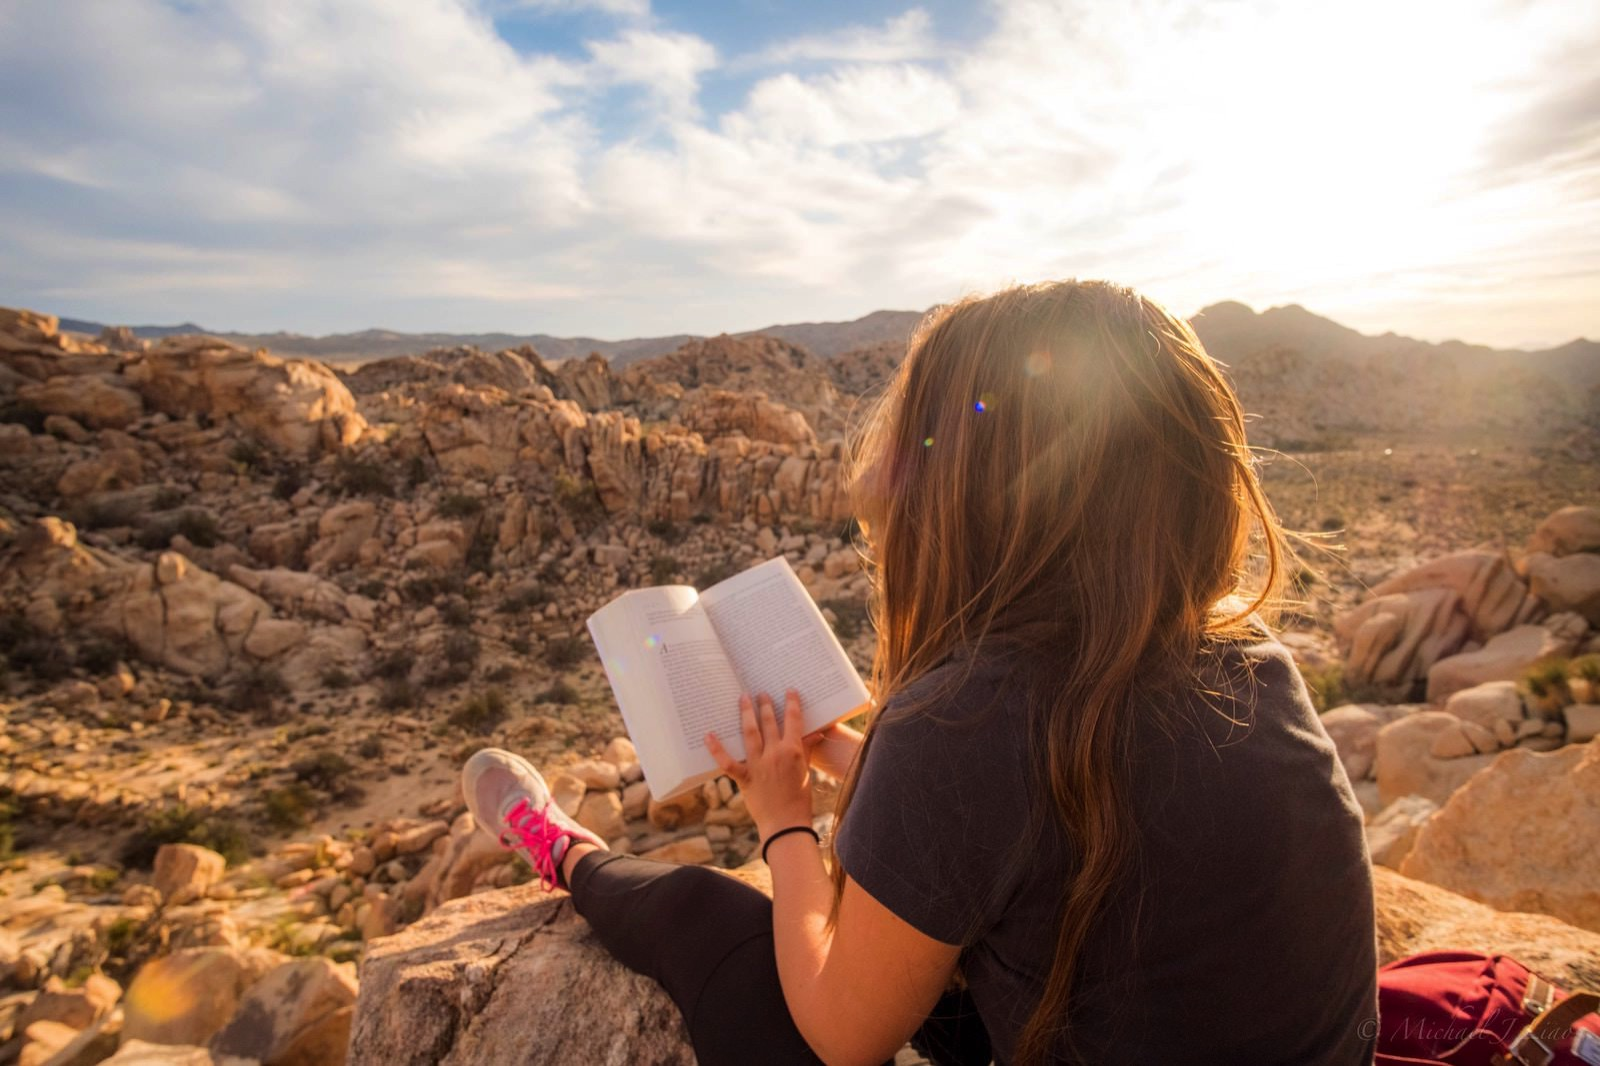 Michael liao 640974 unsplash reading at desert